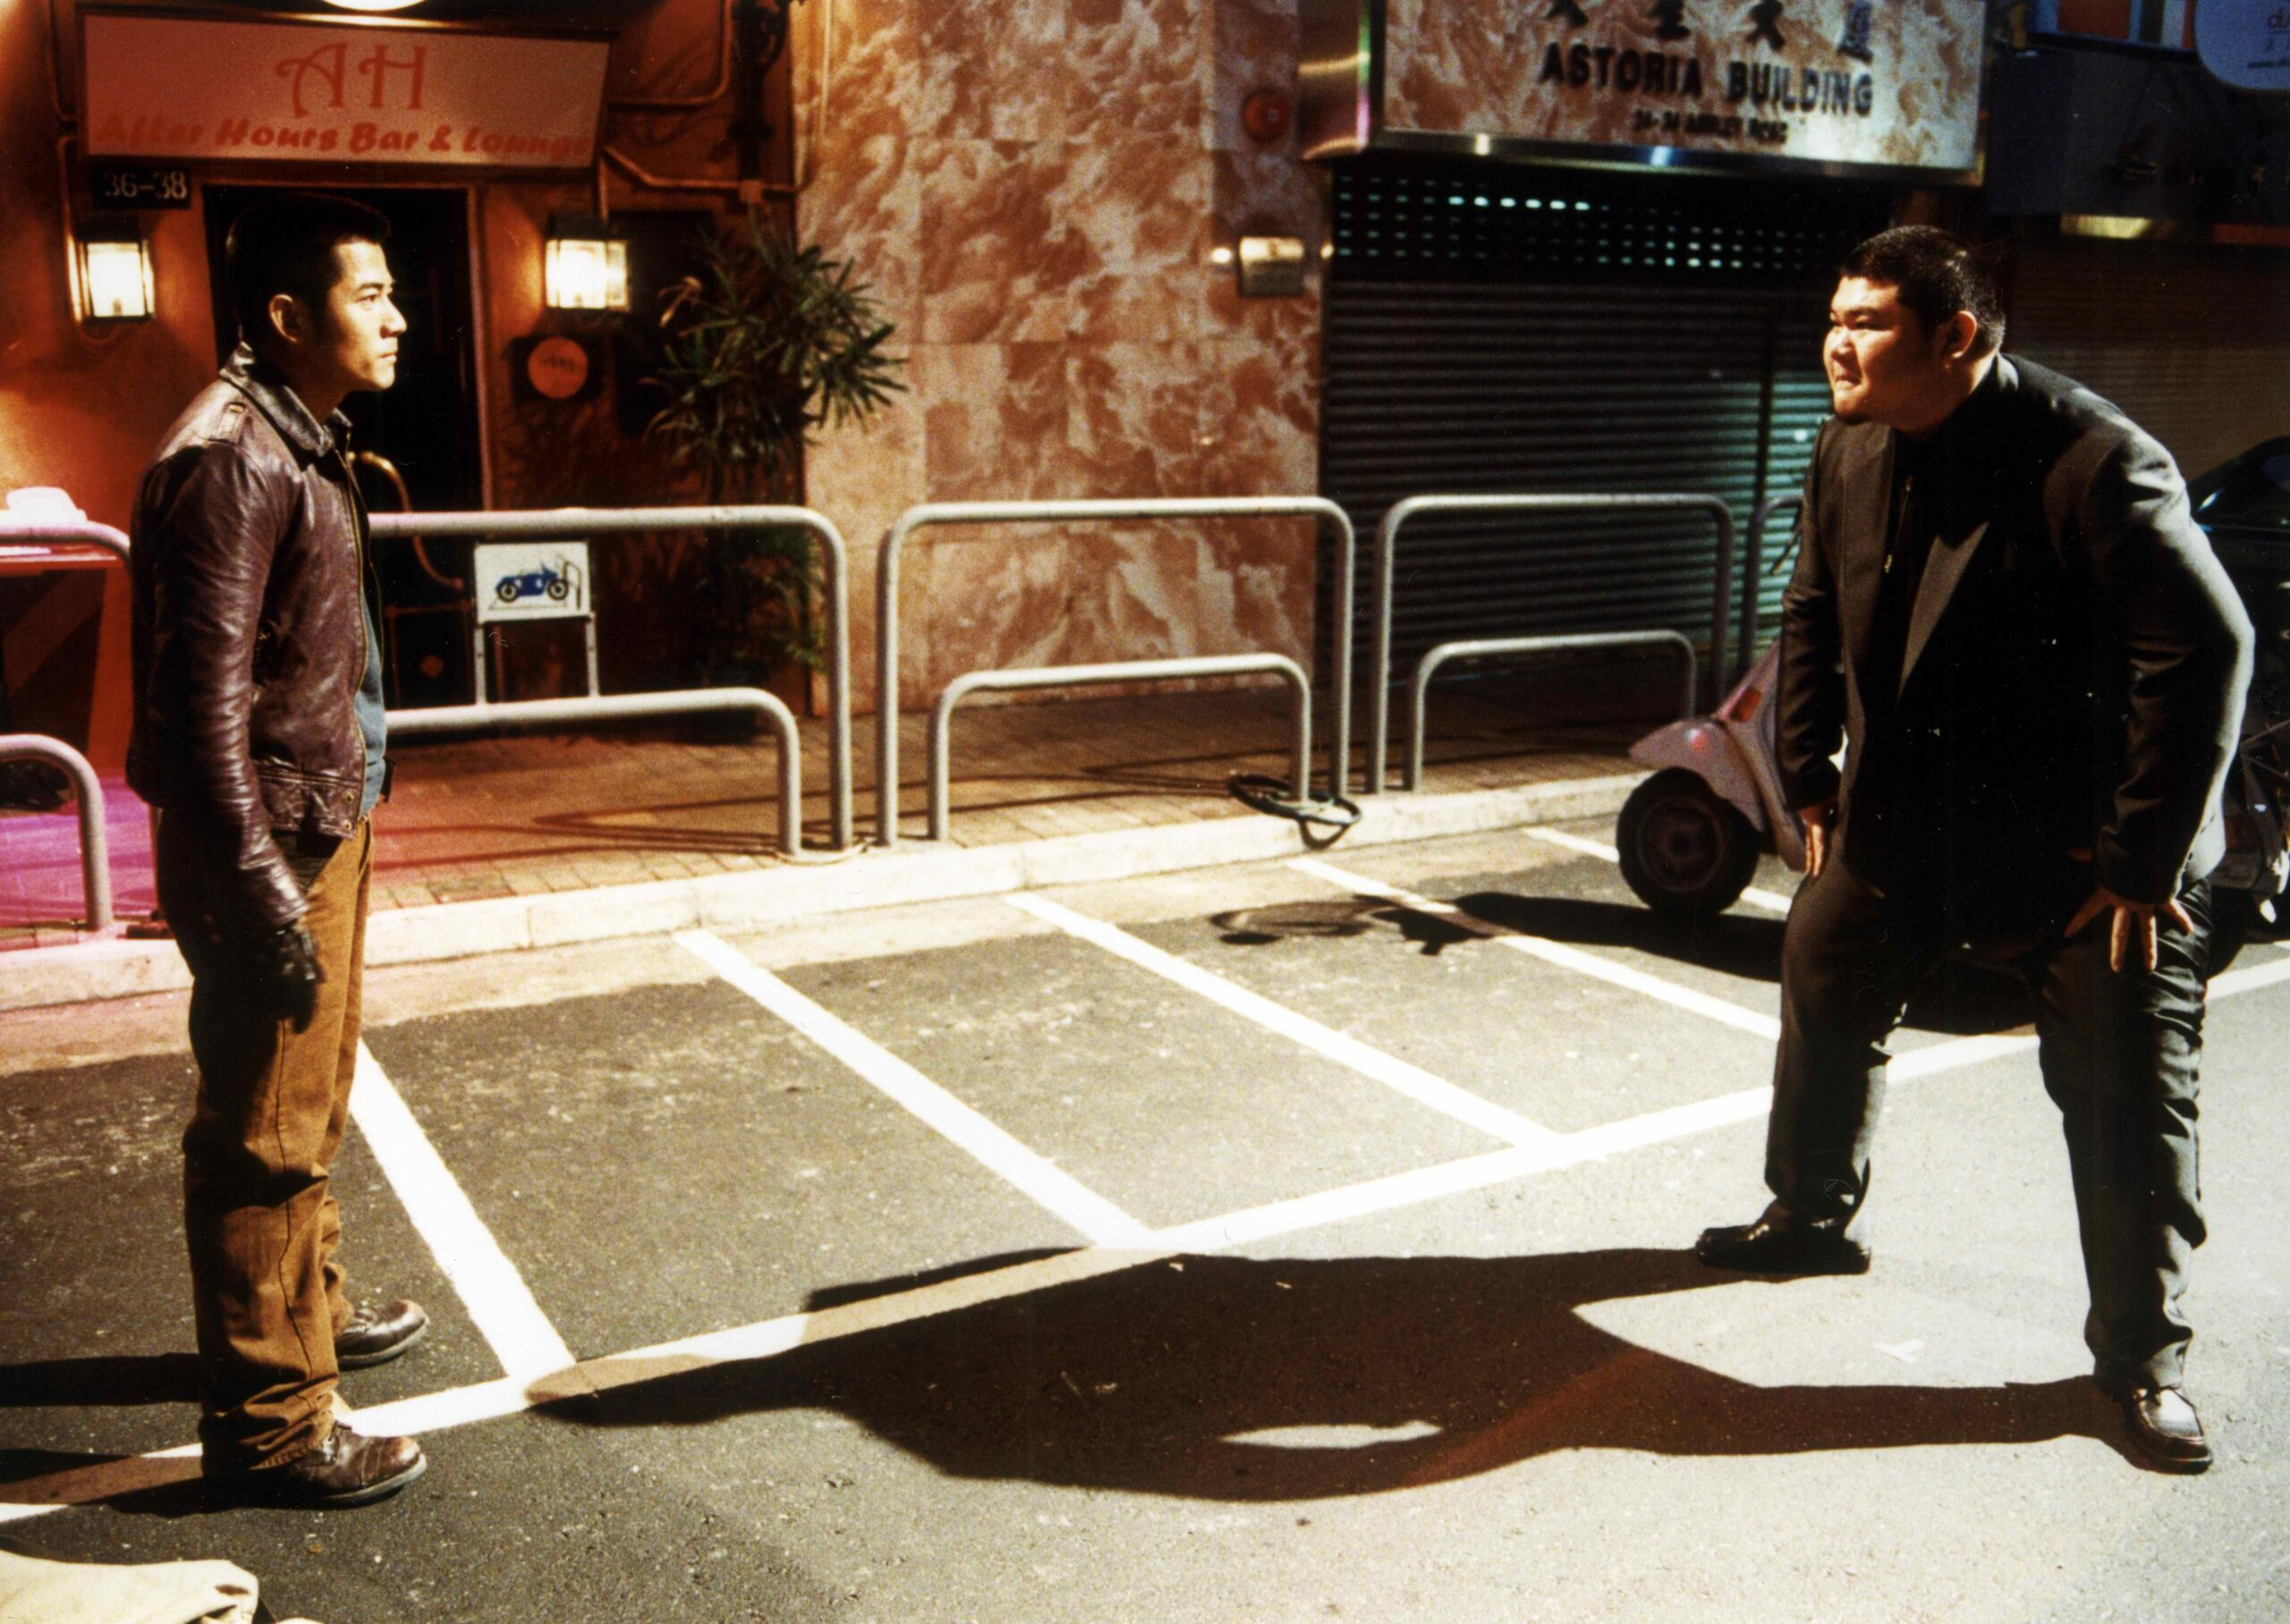 In an Open Relationship with Cinema: #1 Yau doh lung fu bong (2004)